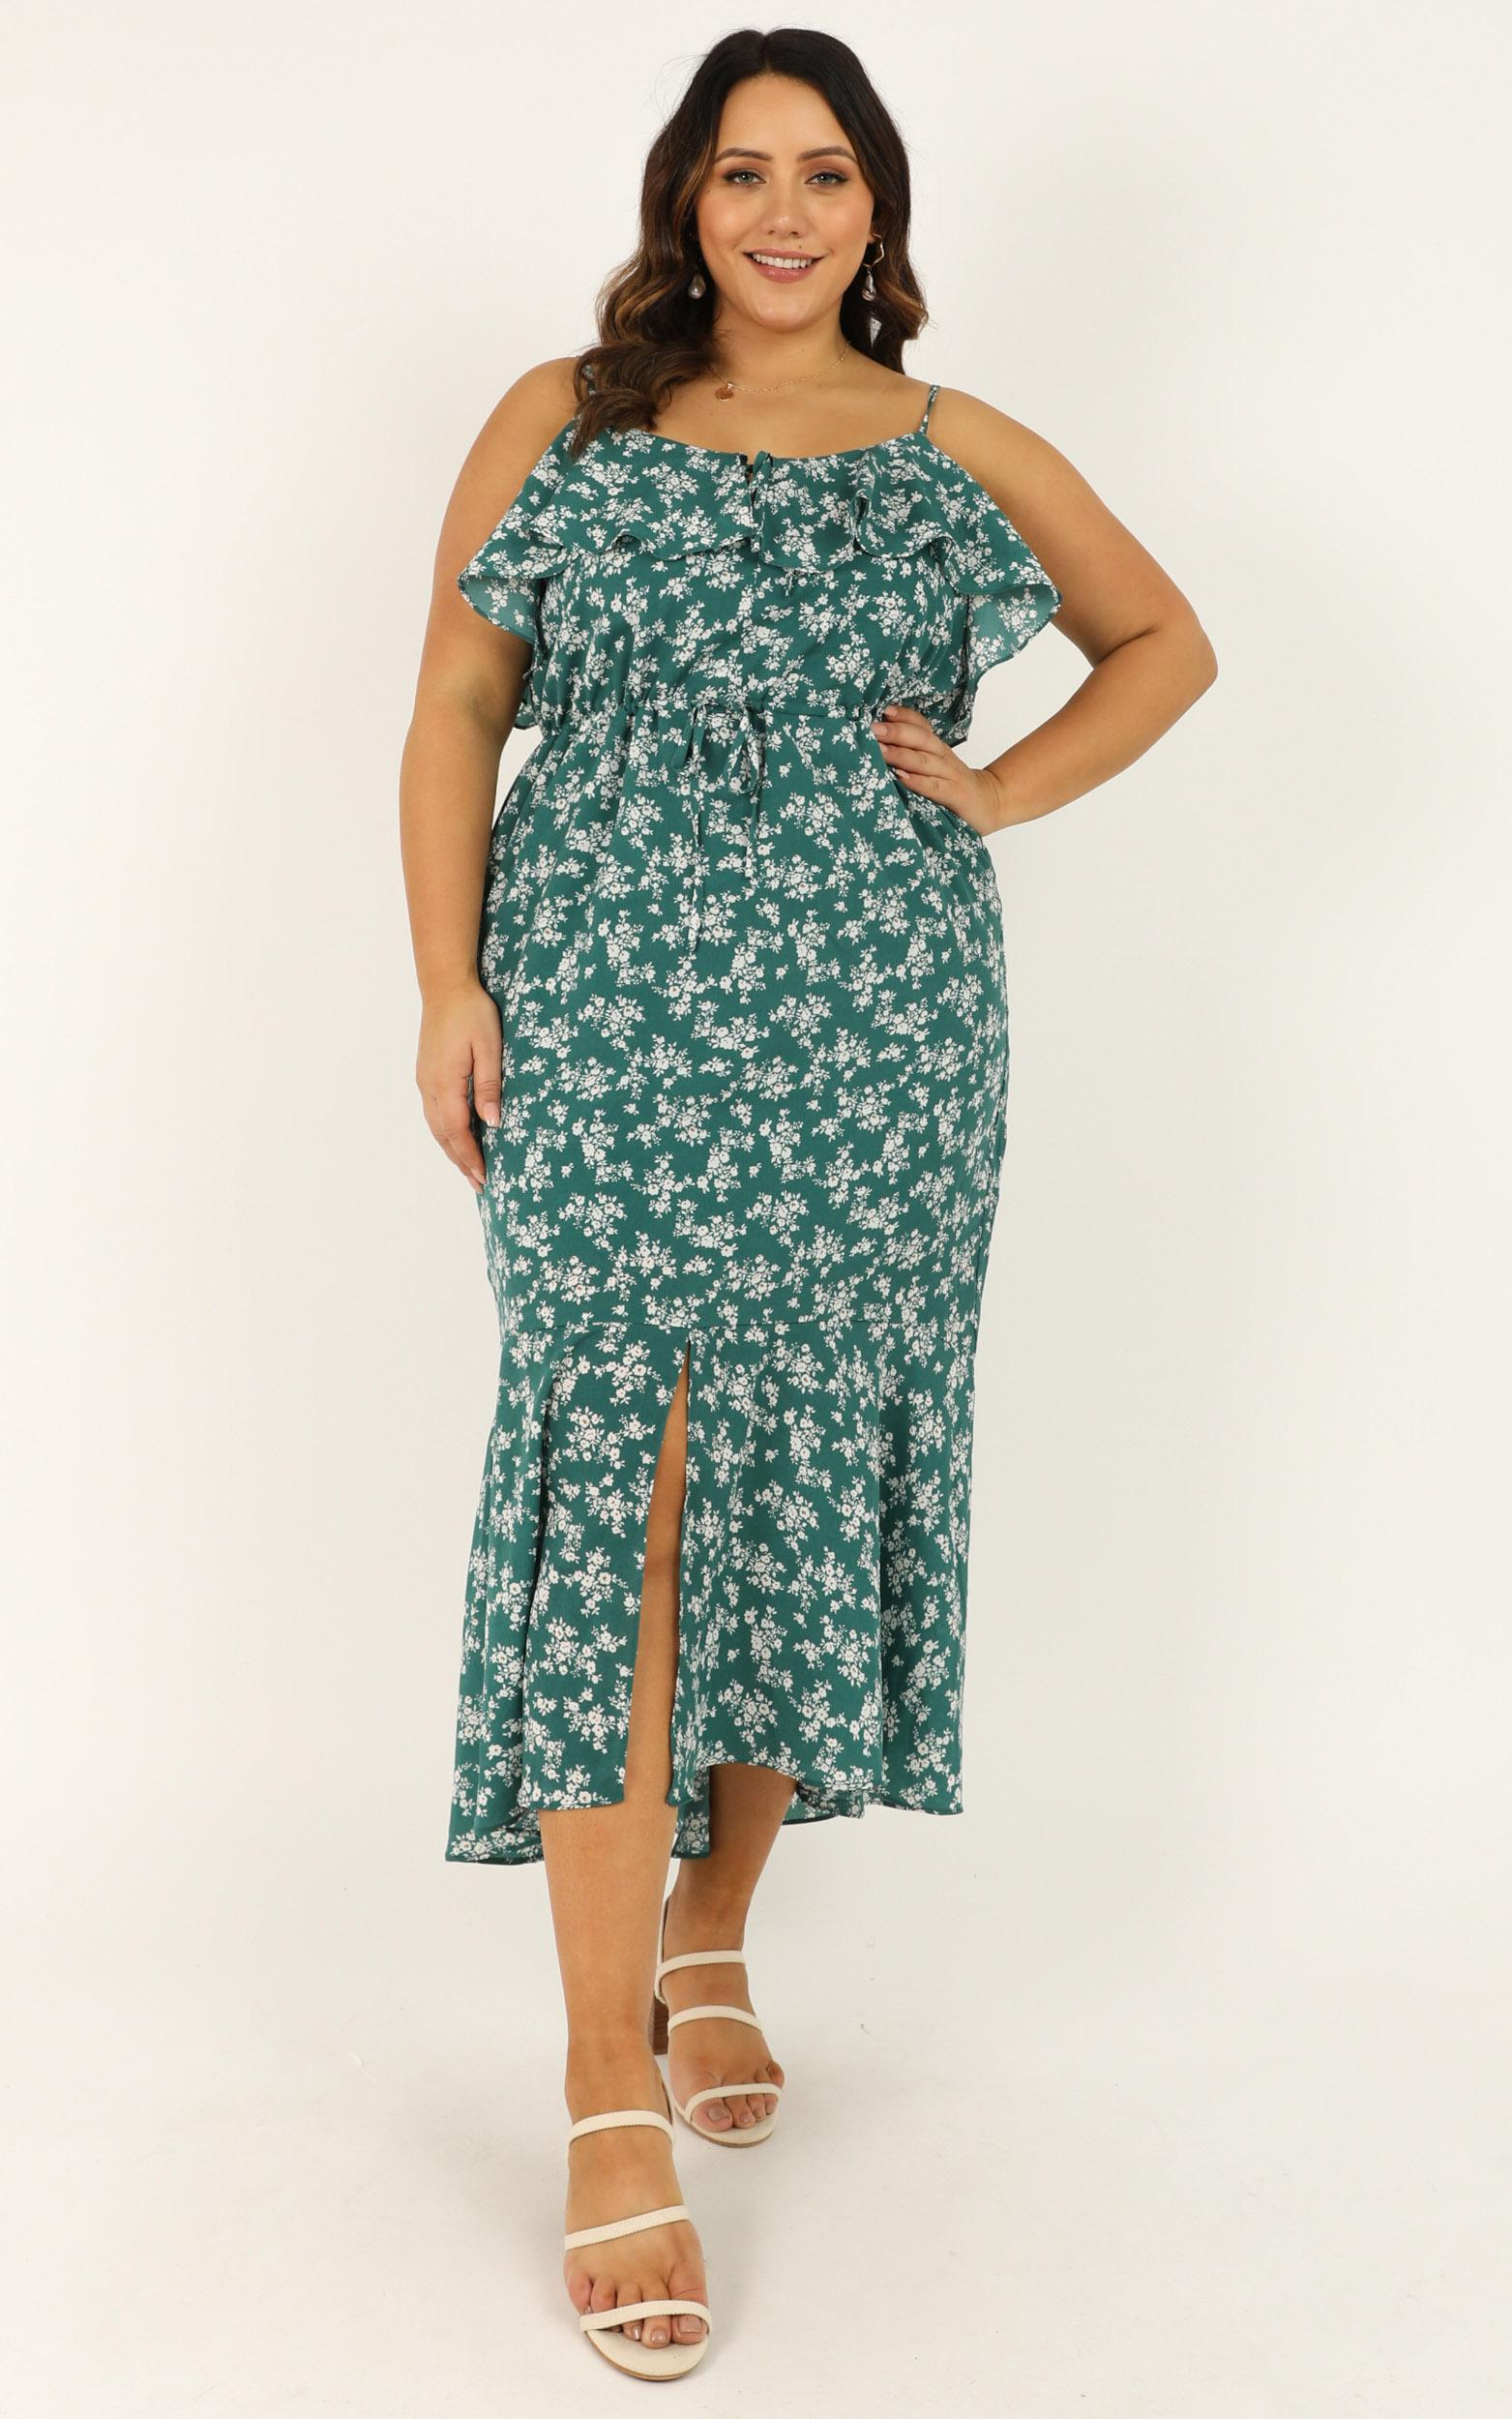 Chasing butterflies dress in emerald floral - 20 (XXXXL), Green, hi-res image number null